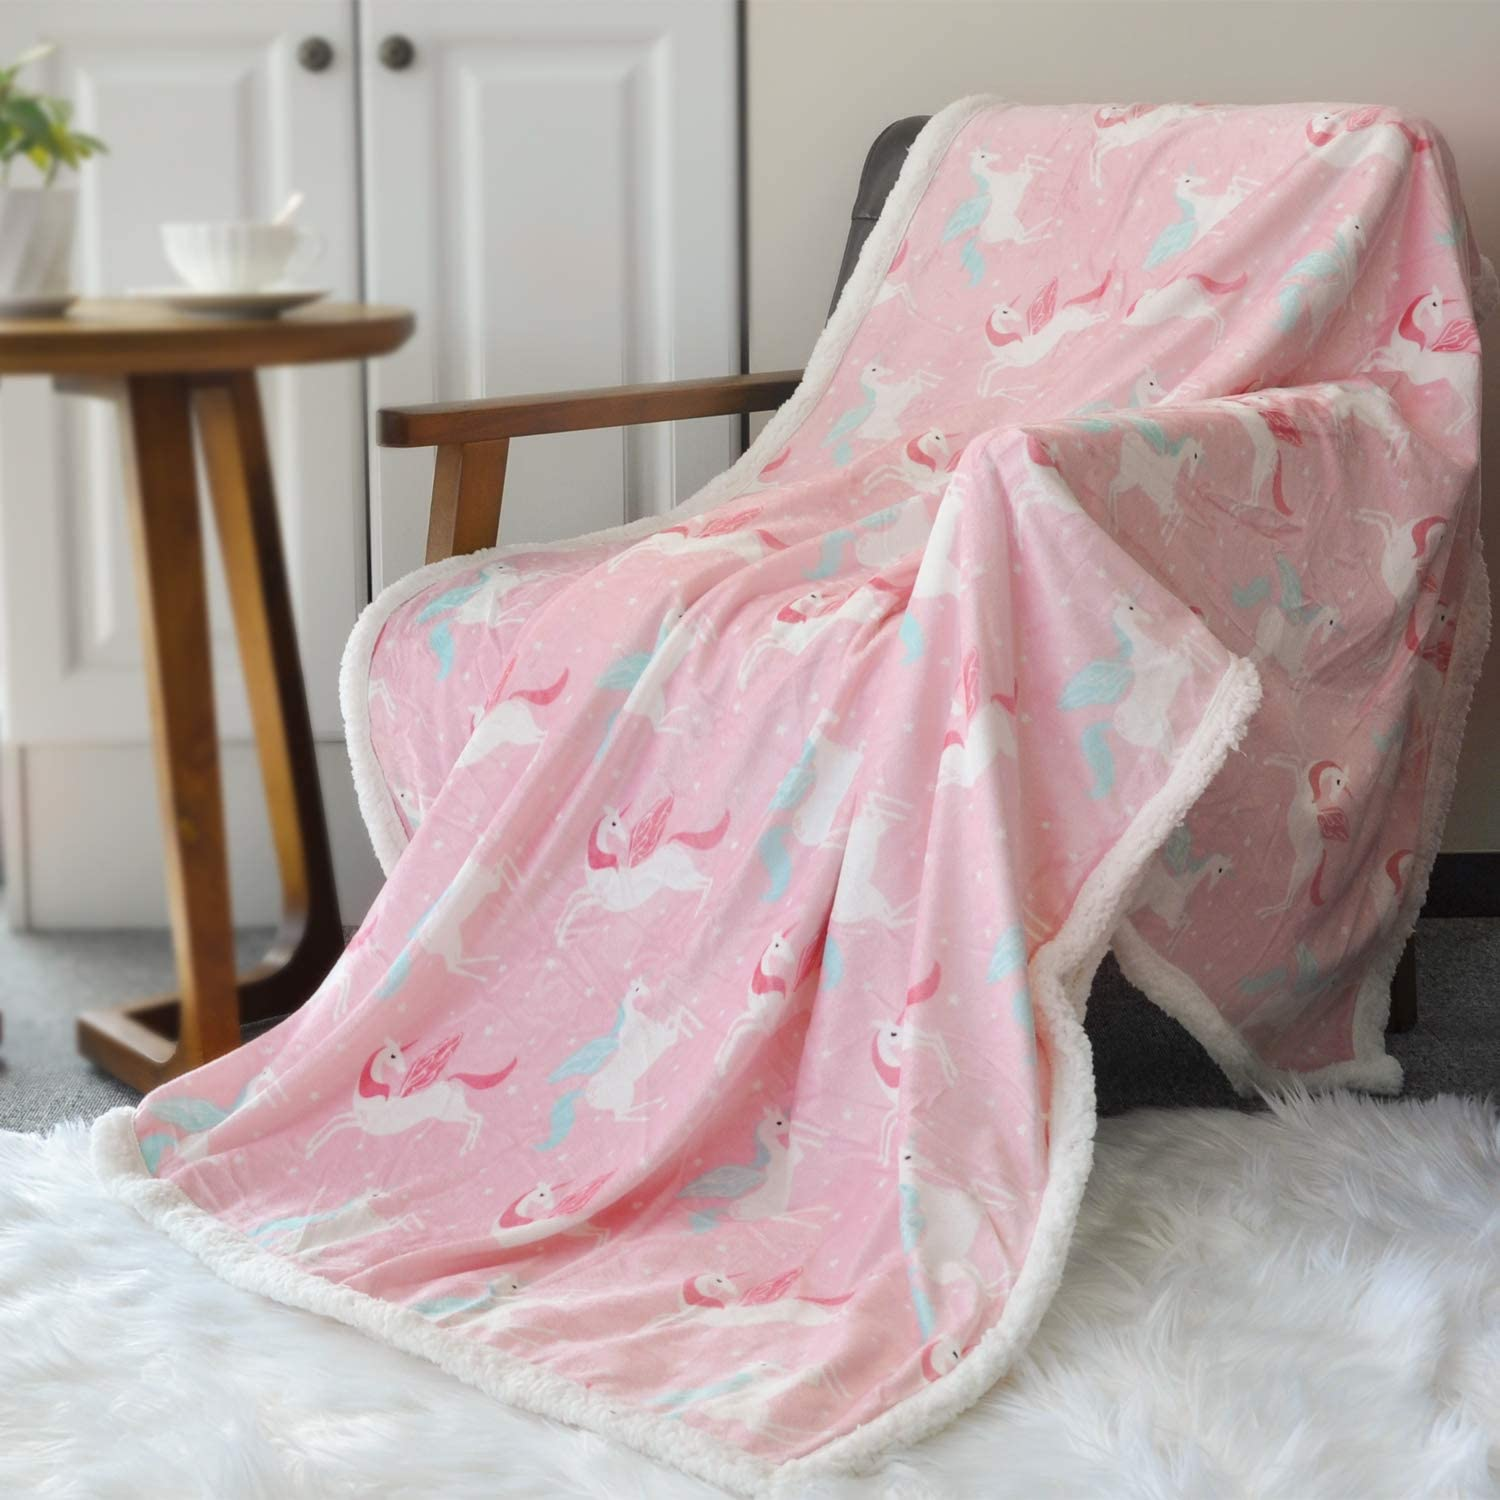 BORITAR Sherpa Throw Blanket Super Soft Warm Ultra Luxurious Fleece Blanket for Children Teens, Young Girls or Adult Minky Blanket with Sherpa Plush Backing (50 x 60 Inch, Lovely Pink Unicorn)